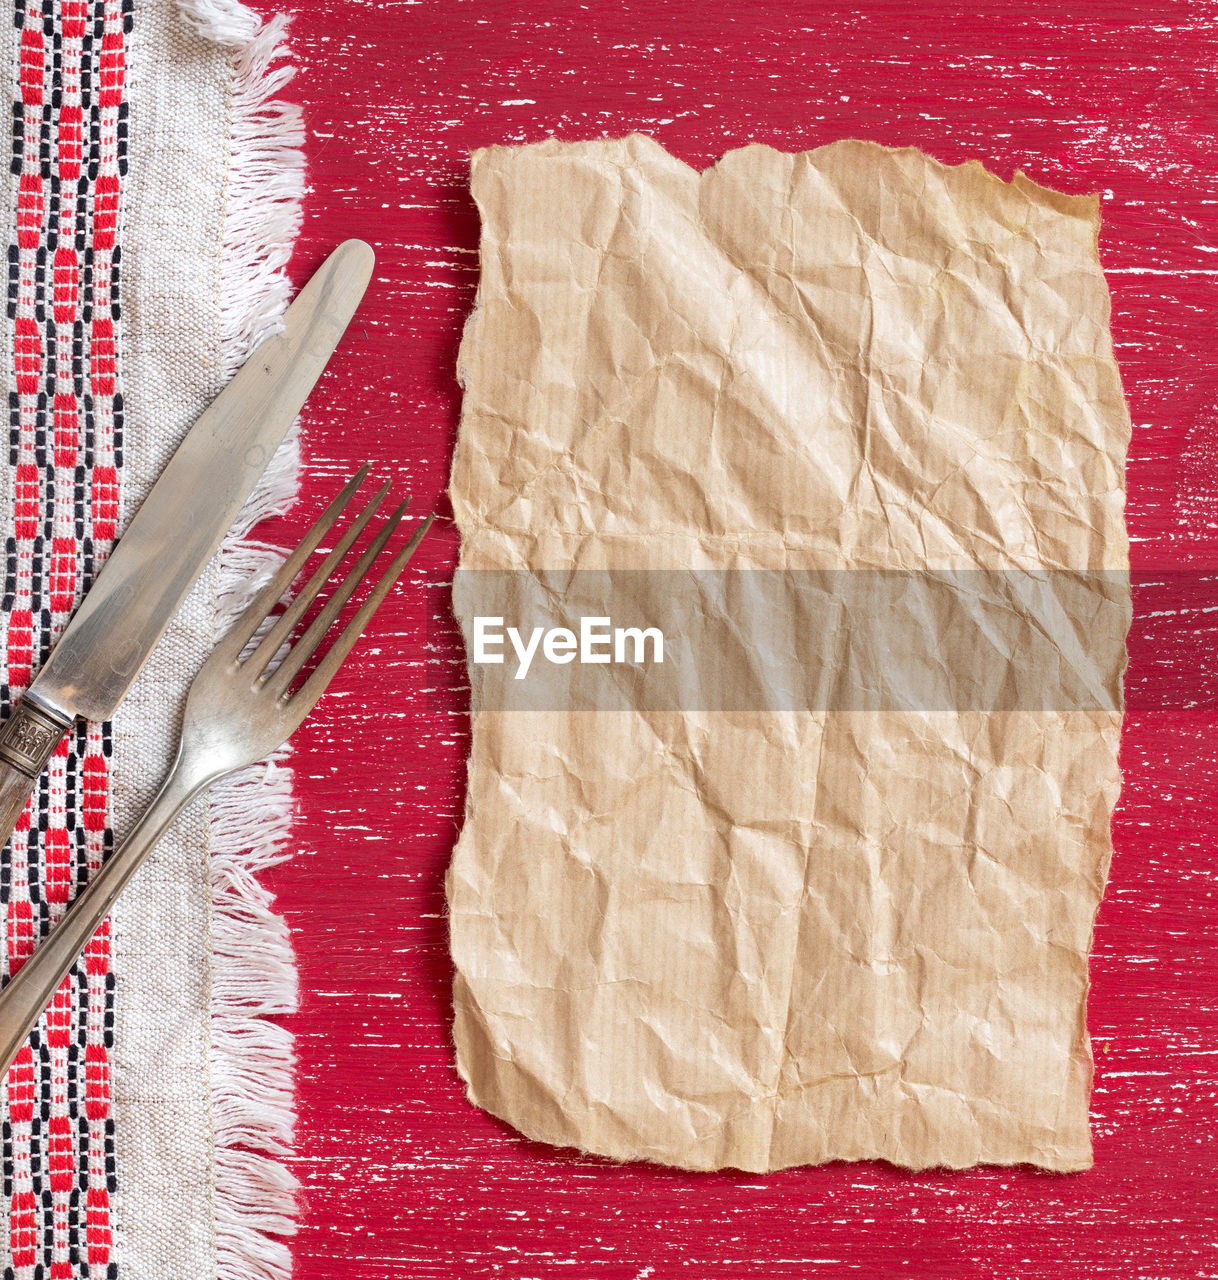 food and drink, food, indoors, table, high angle view, directly above, still life, no people, red, freshness, kitchen utensil, close-up, paper, tablecloth, textile, eating utensil, fork, pattern, studio shot, ready-to-eat, table knife